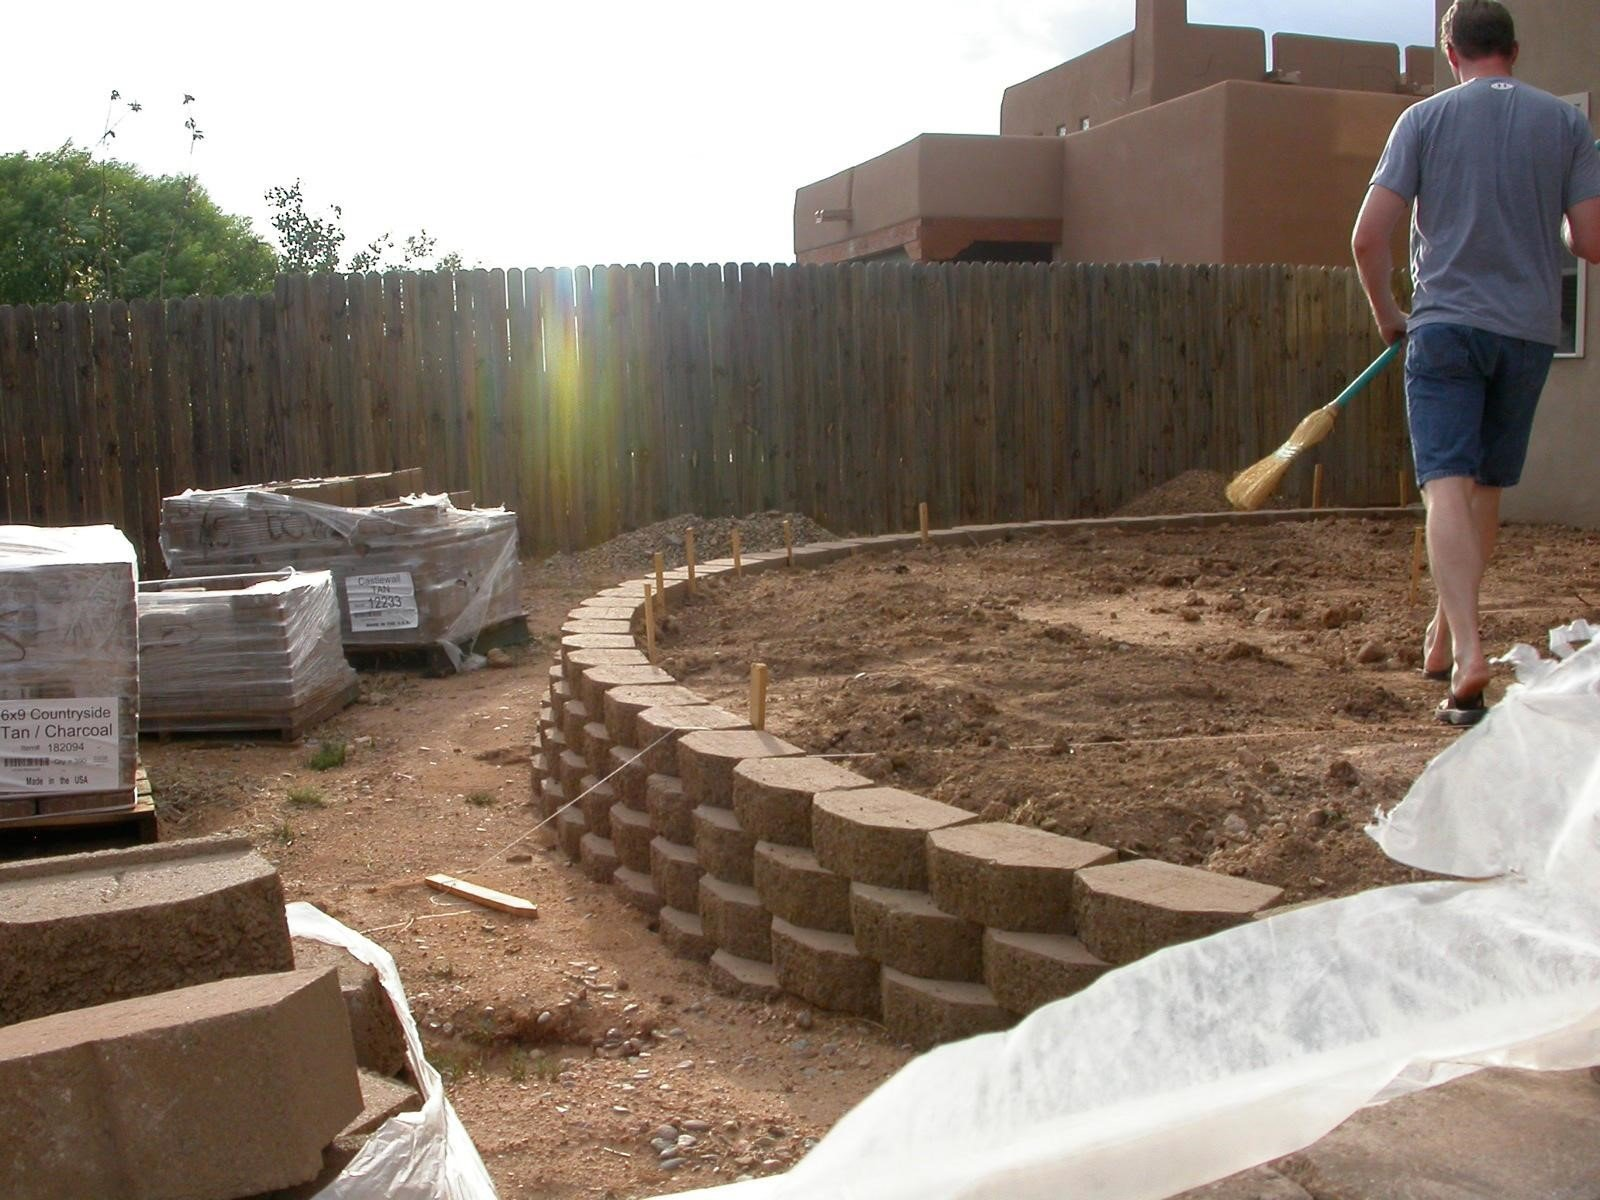 Steer Clear of Straight Walls - Building a Retaining Wall